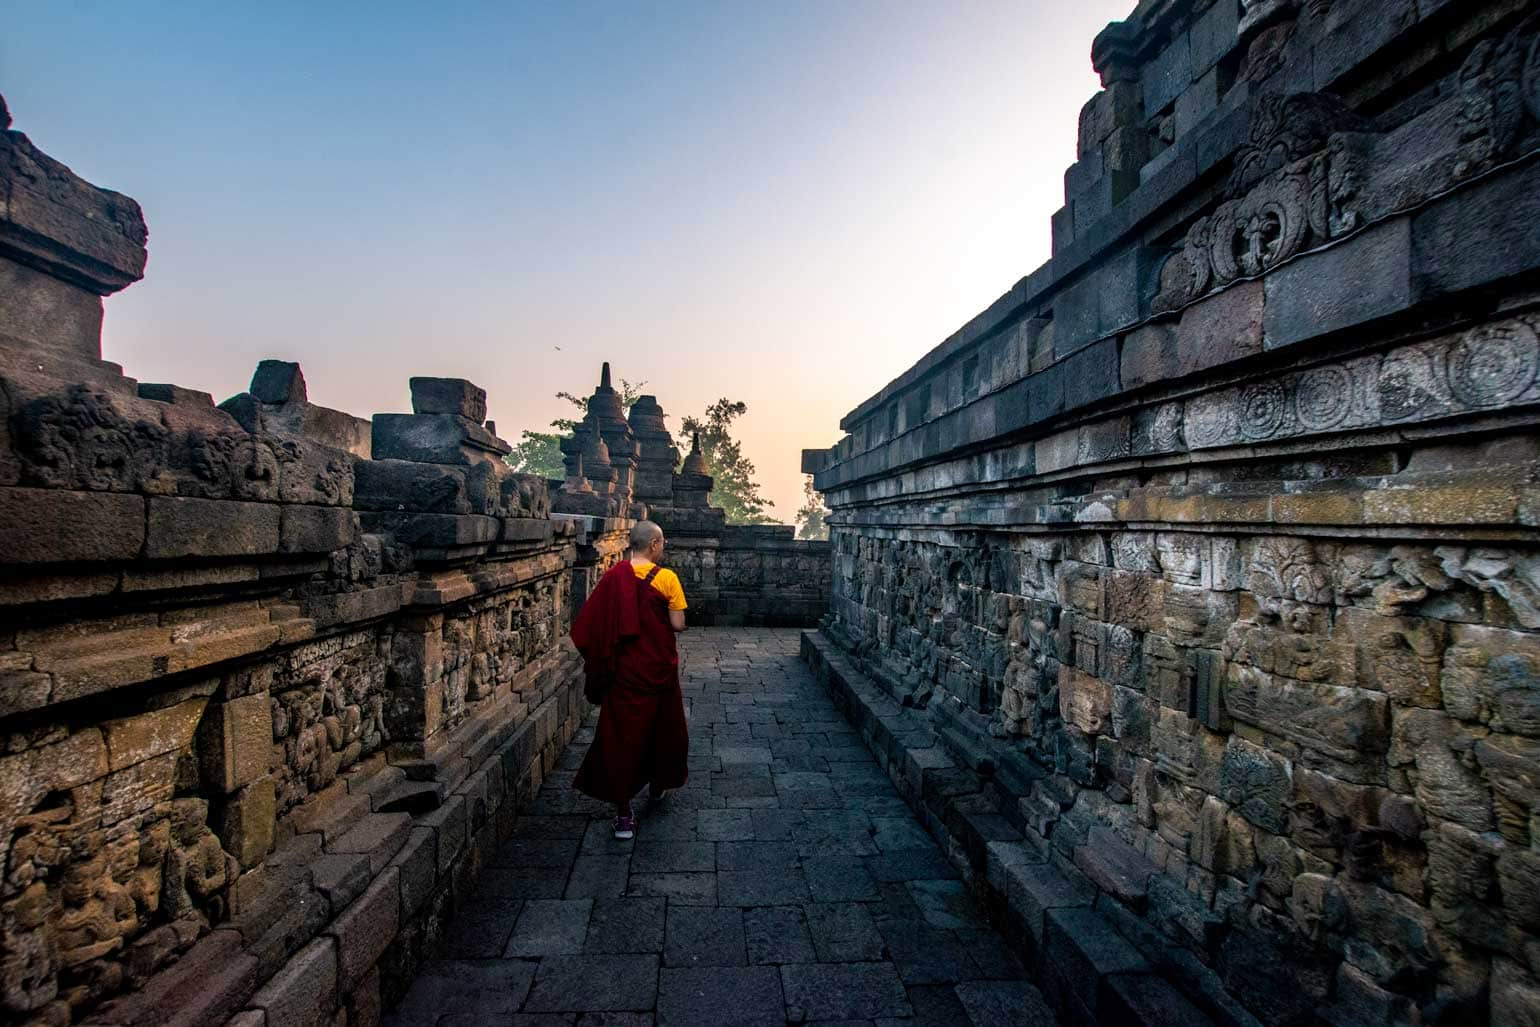 sunrise at Borobudur - lonely monk